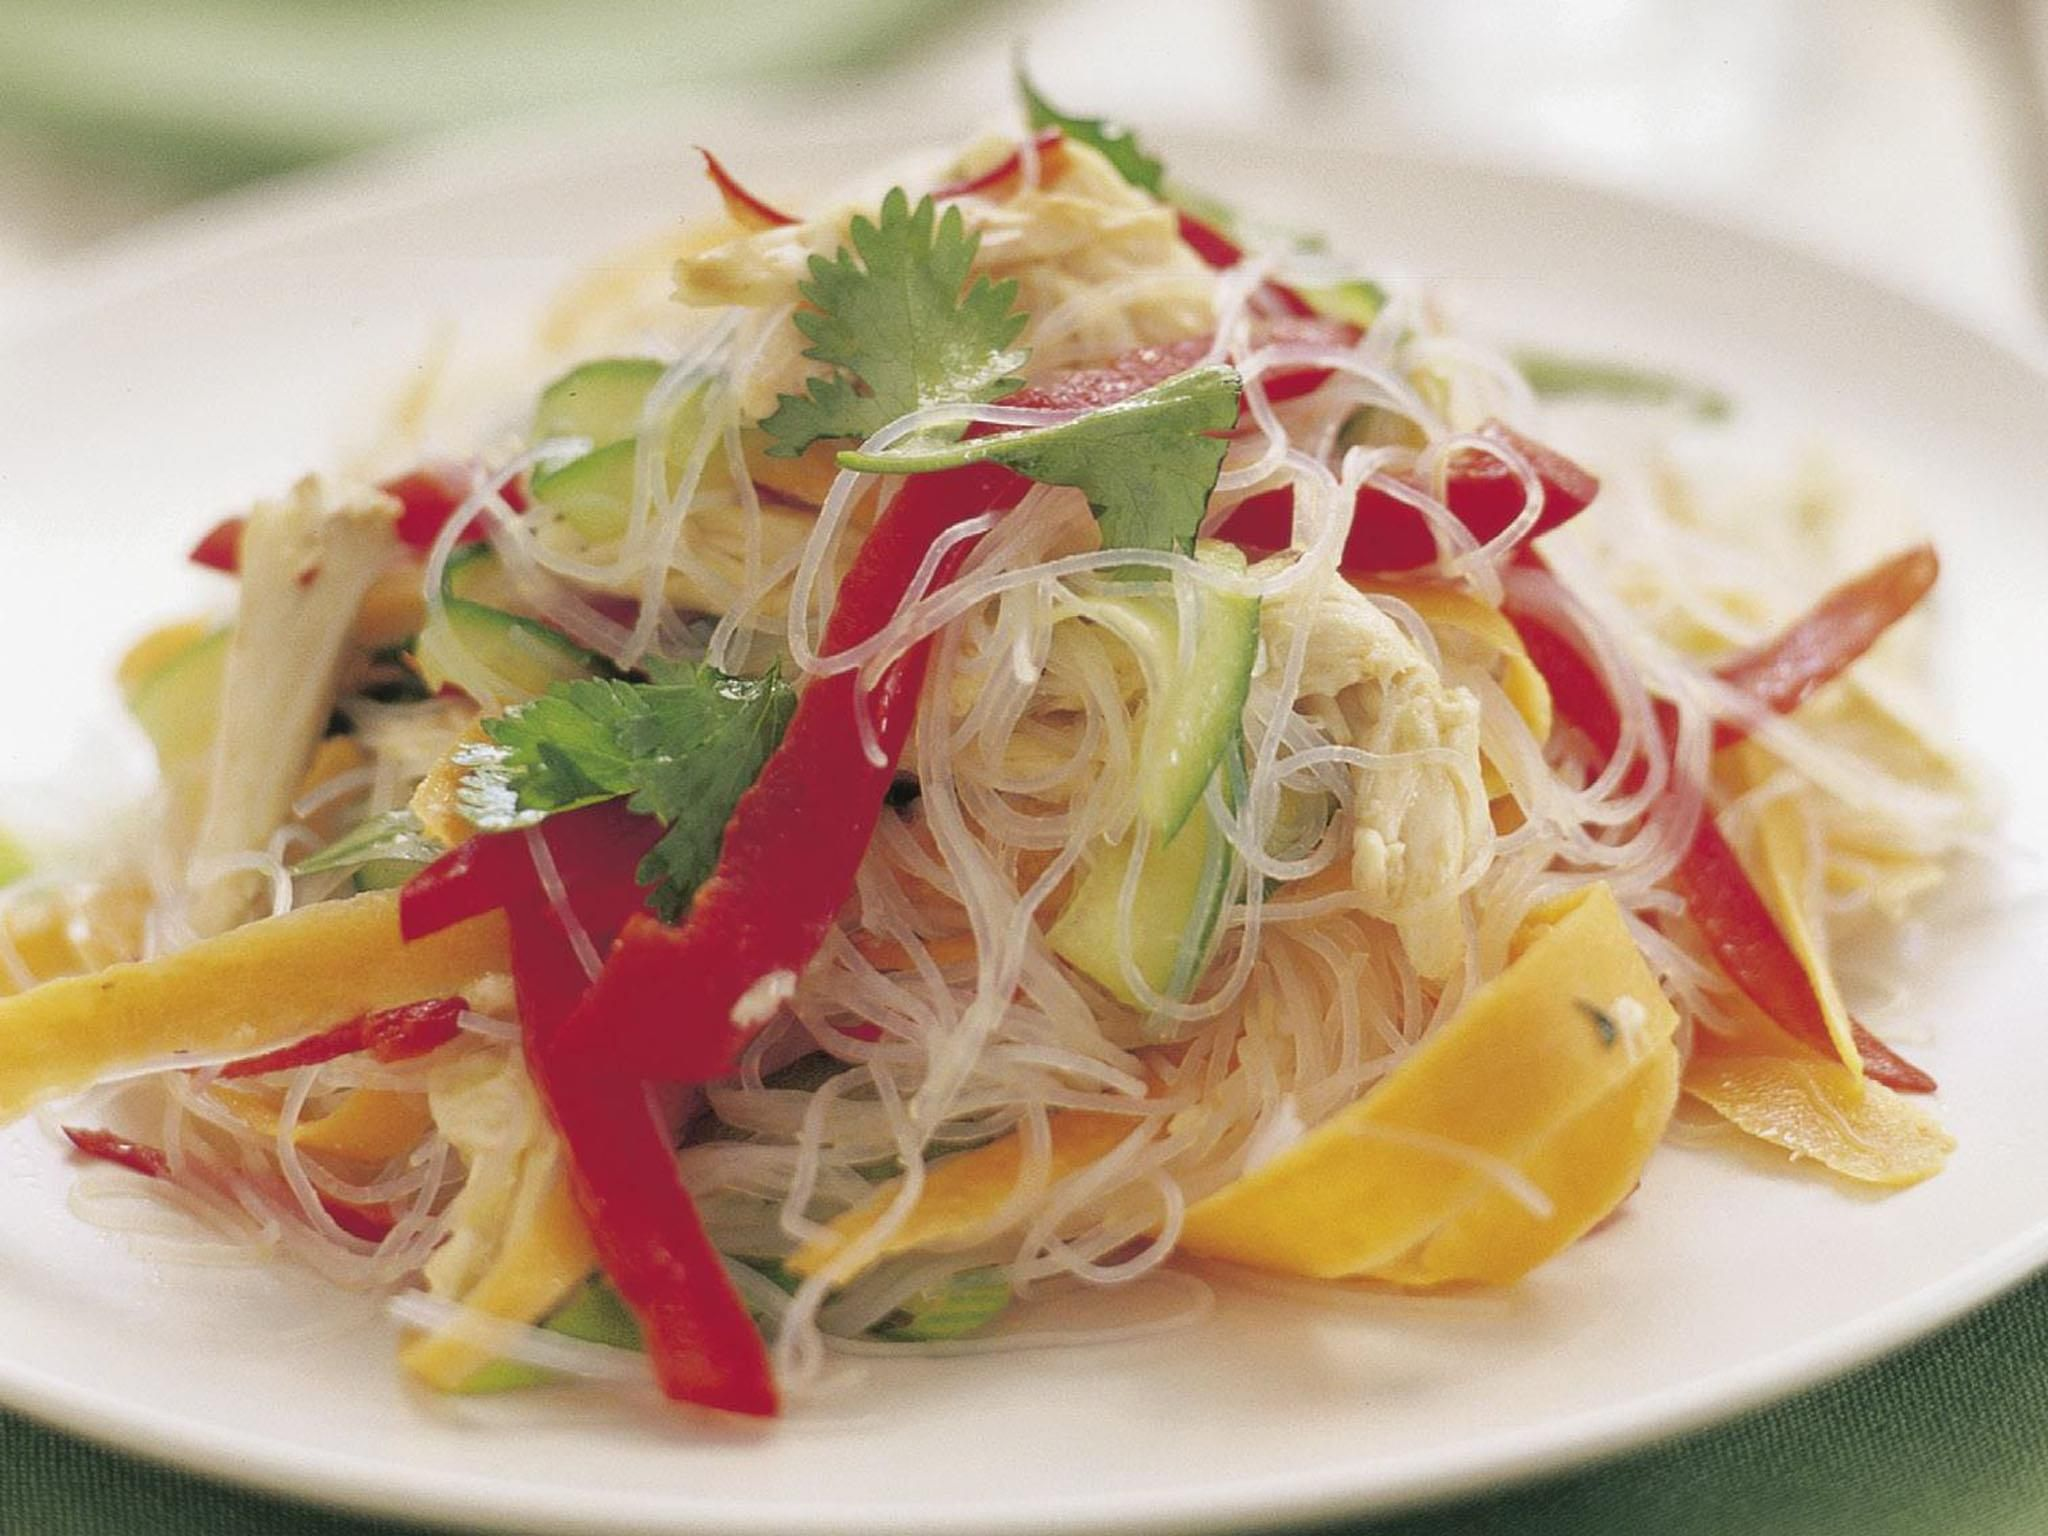 Packed with spicy vegetables, juicy chicken and seasoning, whip up this salad in fifteen minutes.